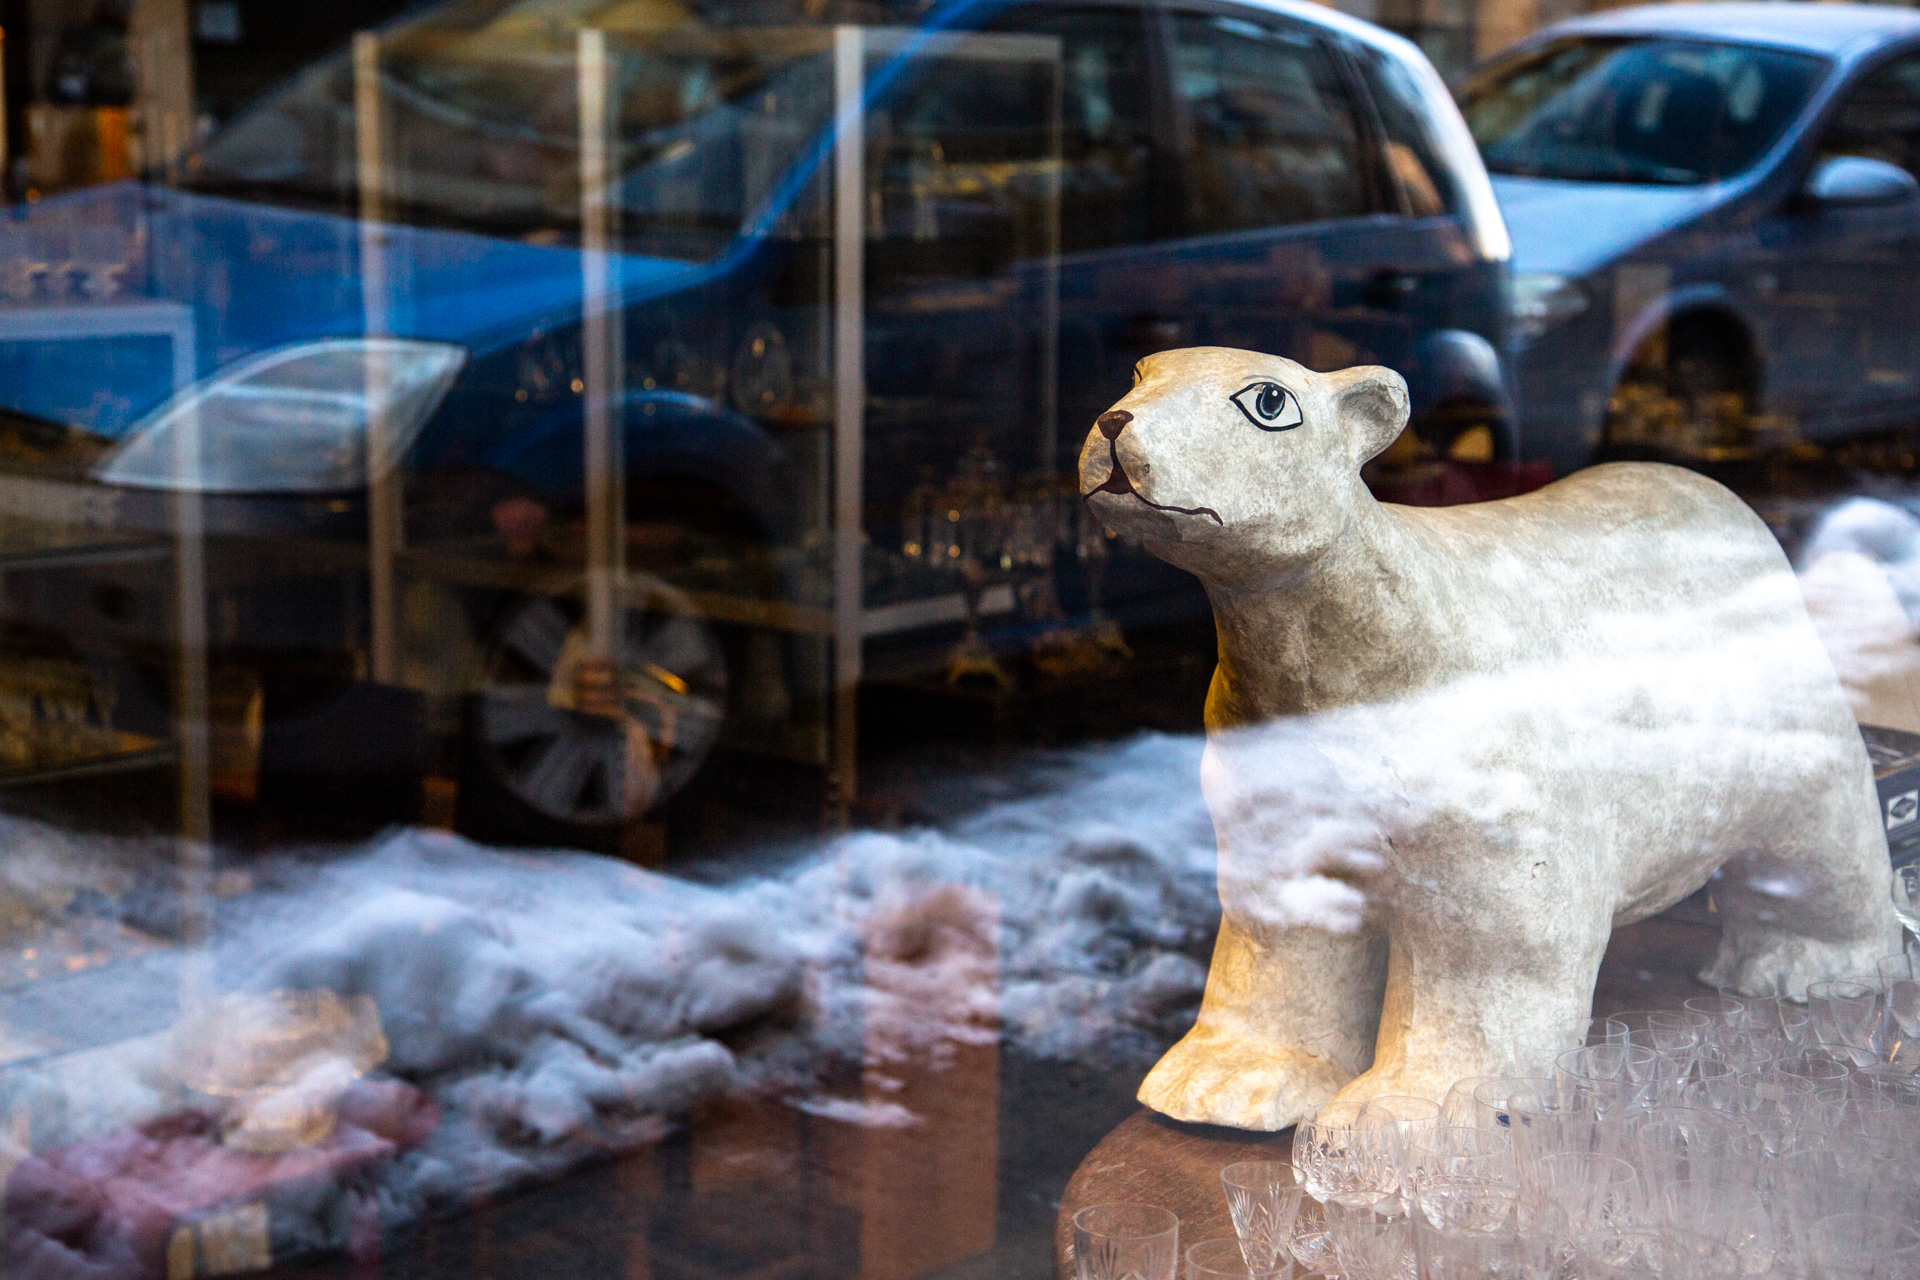 An antique polar bear in the window with reflections of snow and cars parked by the street.